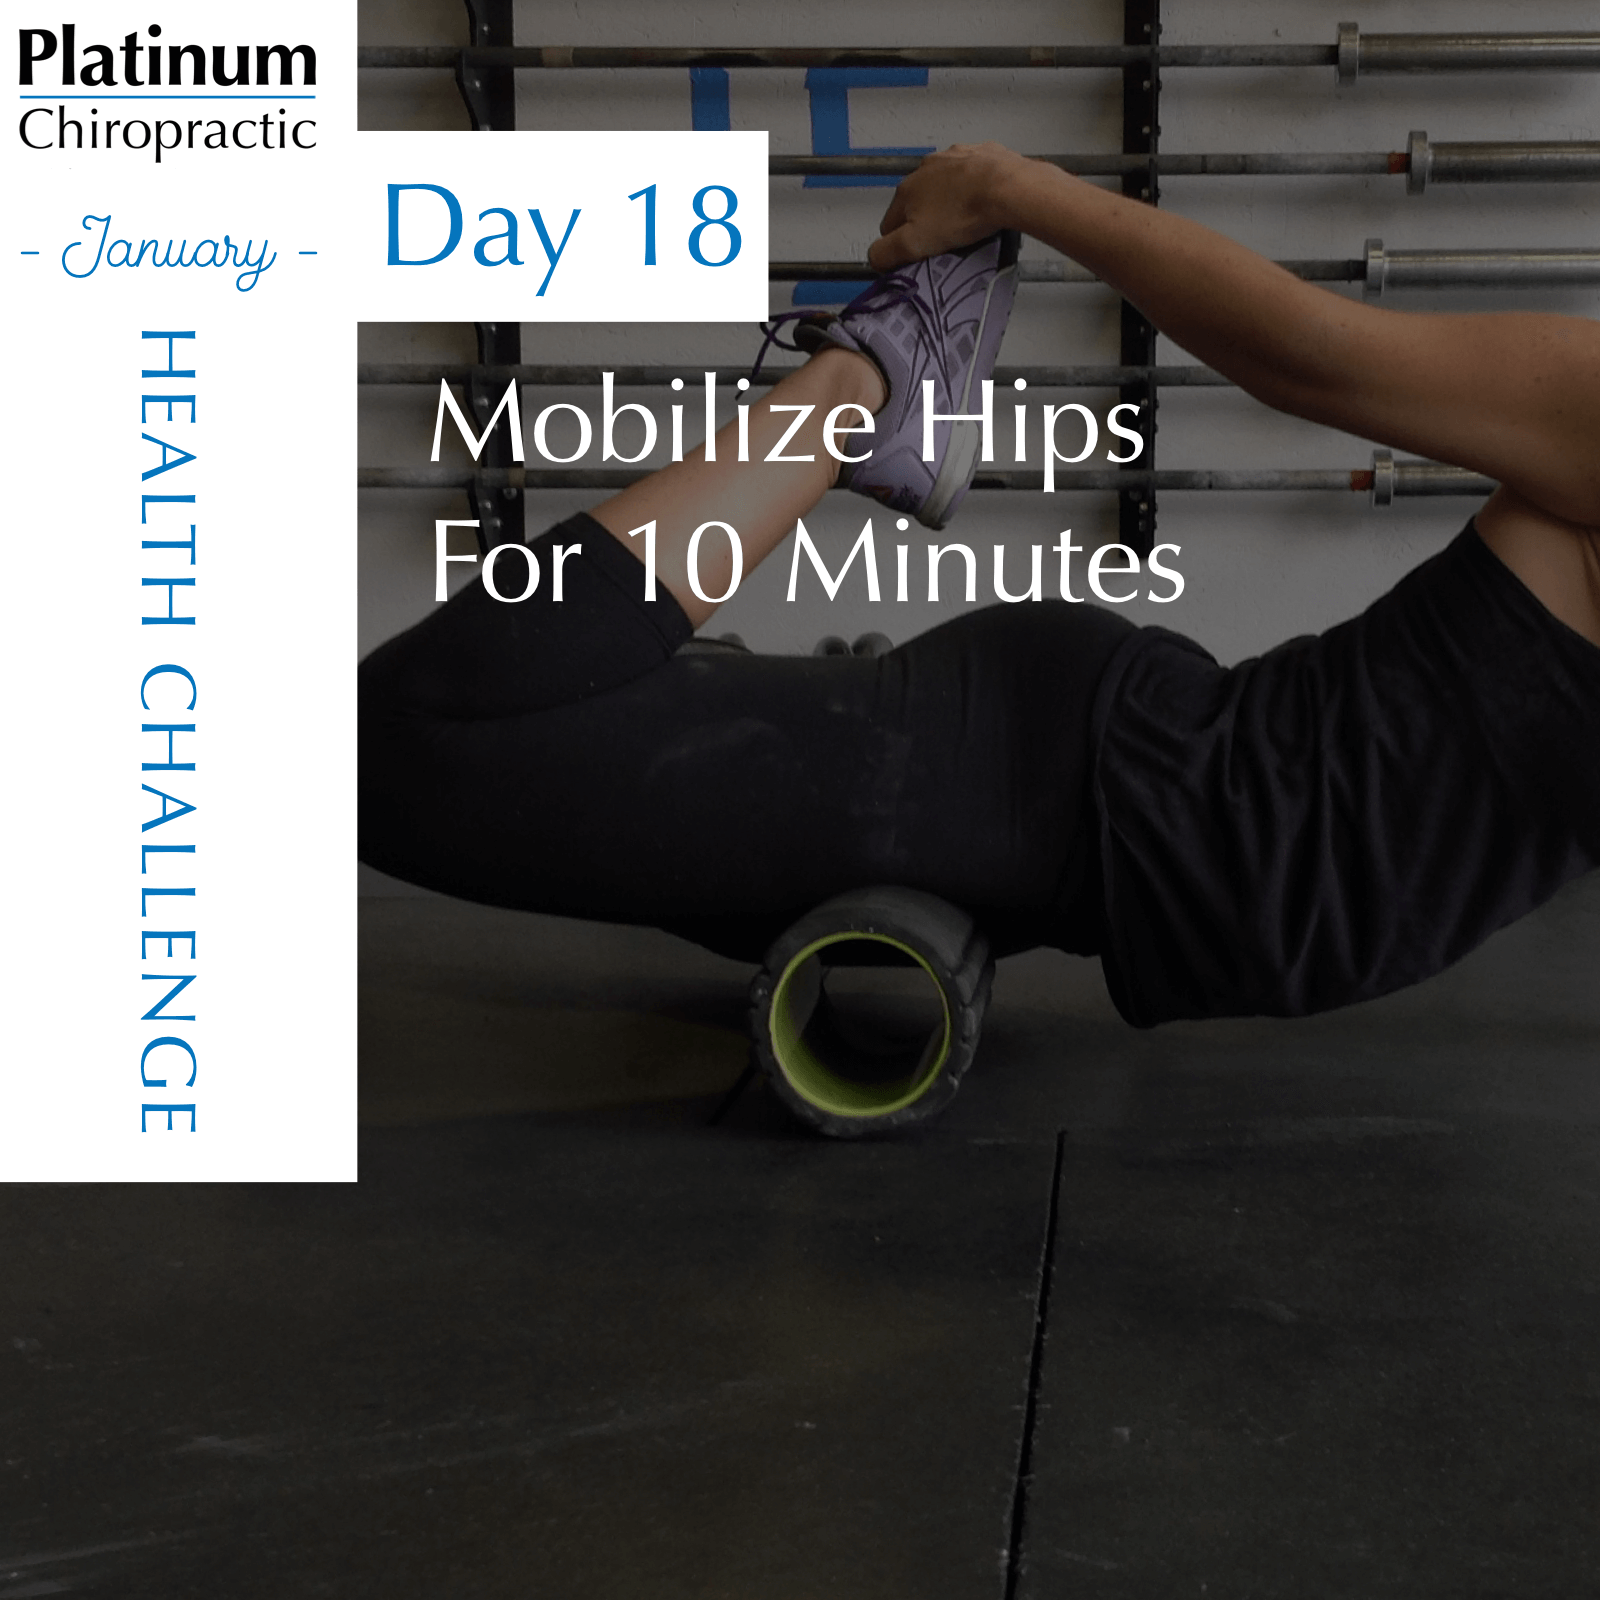 Mobilizing our Hips for 10 minutes